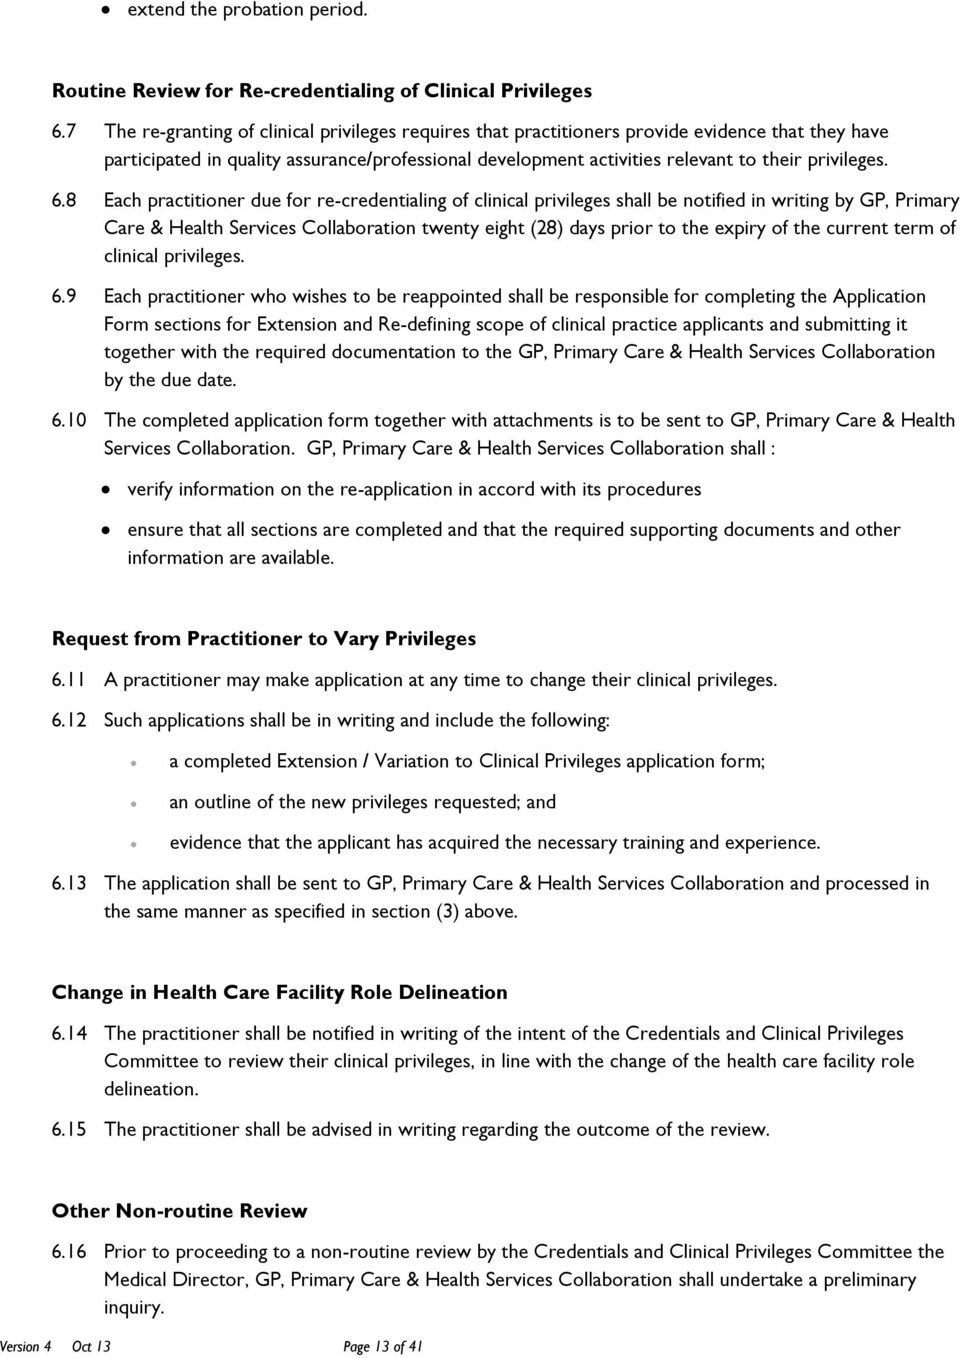 6.8 Each practitioner due for re-credentialing of clinical privileges shall be notified in writing by GP, Primary Care & Health Services Collaboration twenty eight (28) days prior to the expiry of